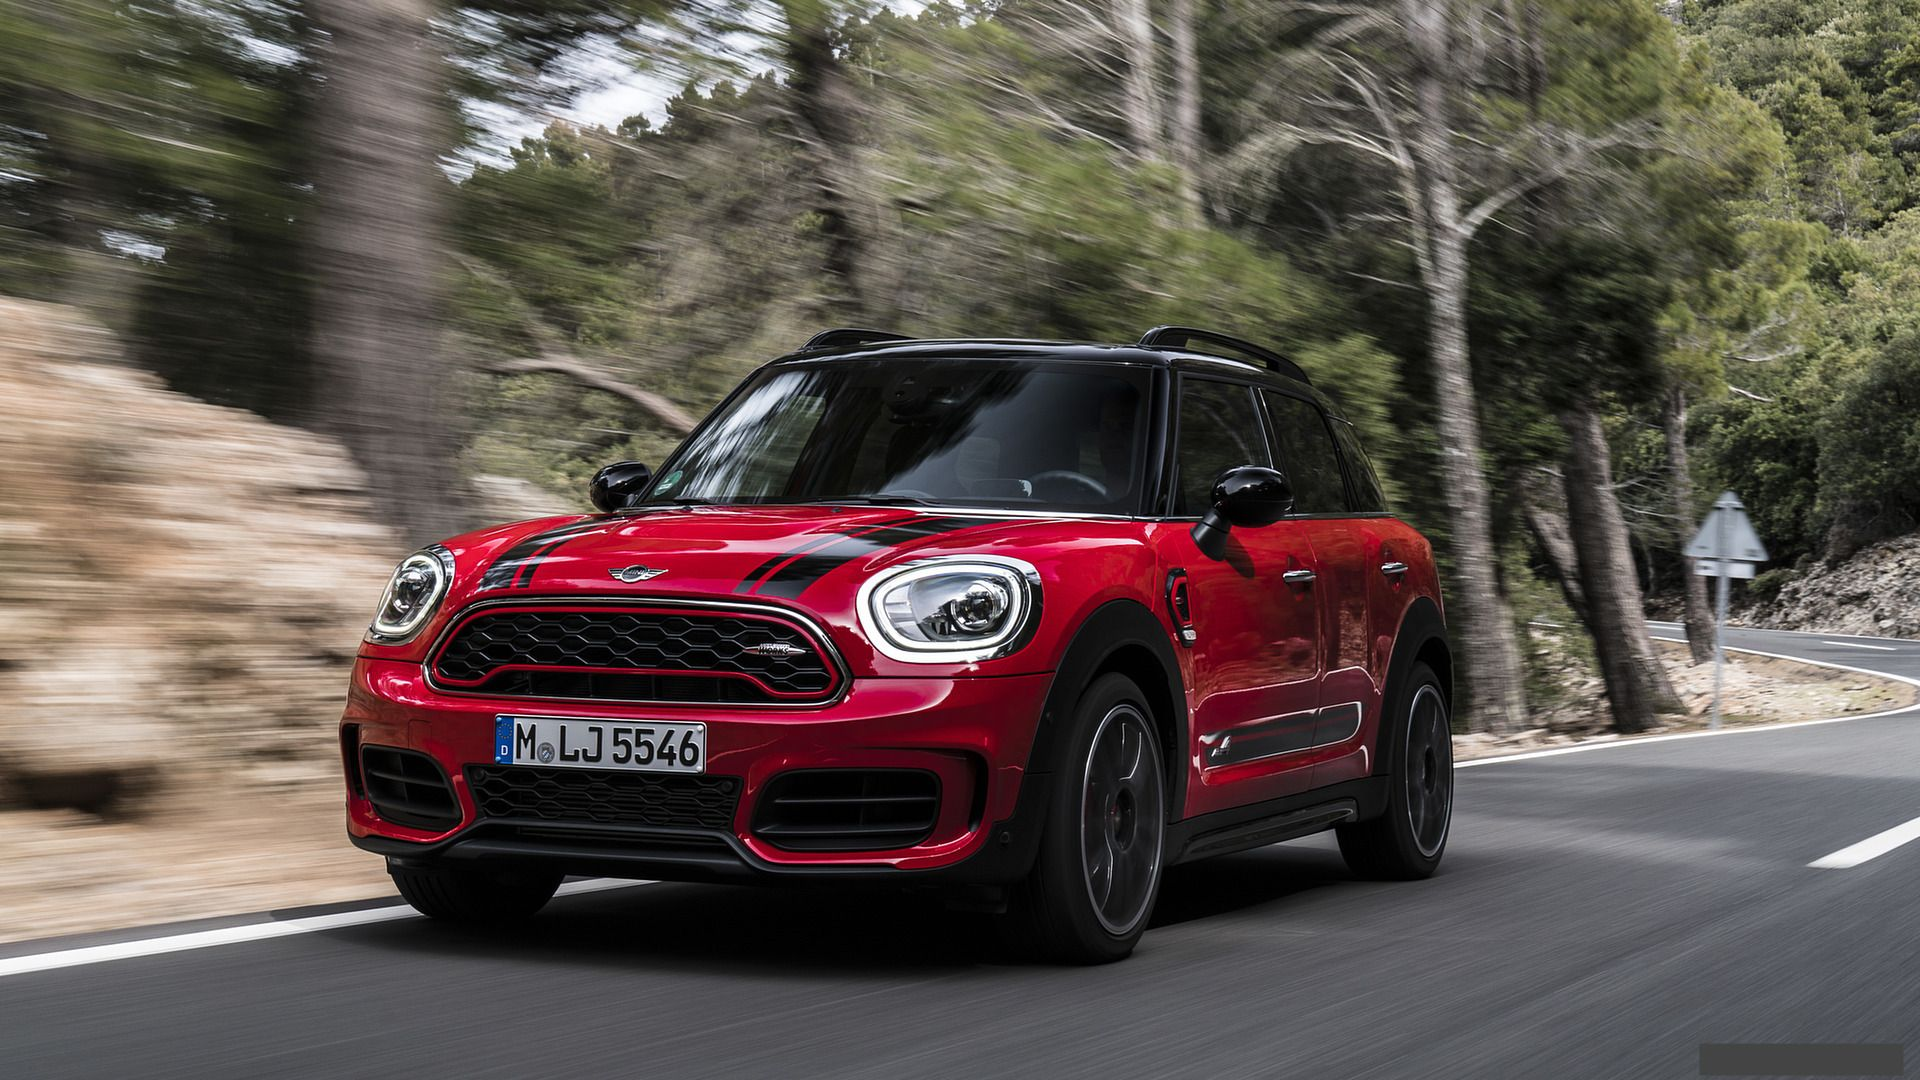 mini cooper countryman all 4 john cooper works 10, hire , rent , location , alquiler , aluguel, Verleih , kiralık , kiralama , прокат , 聘请 , 僦 , לחכור - ParisLuxuryCar, paris, luxury